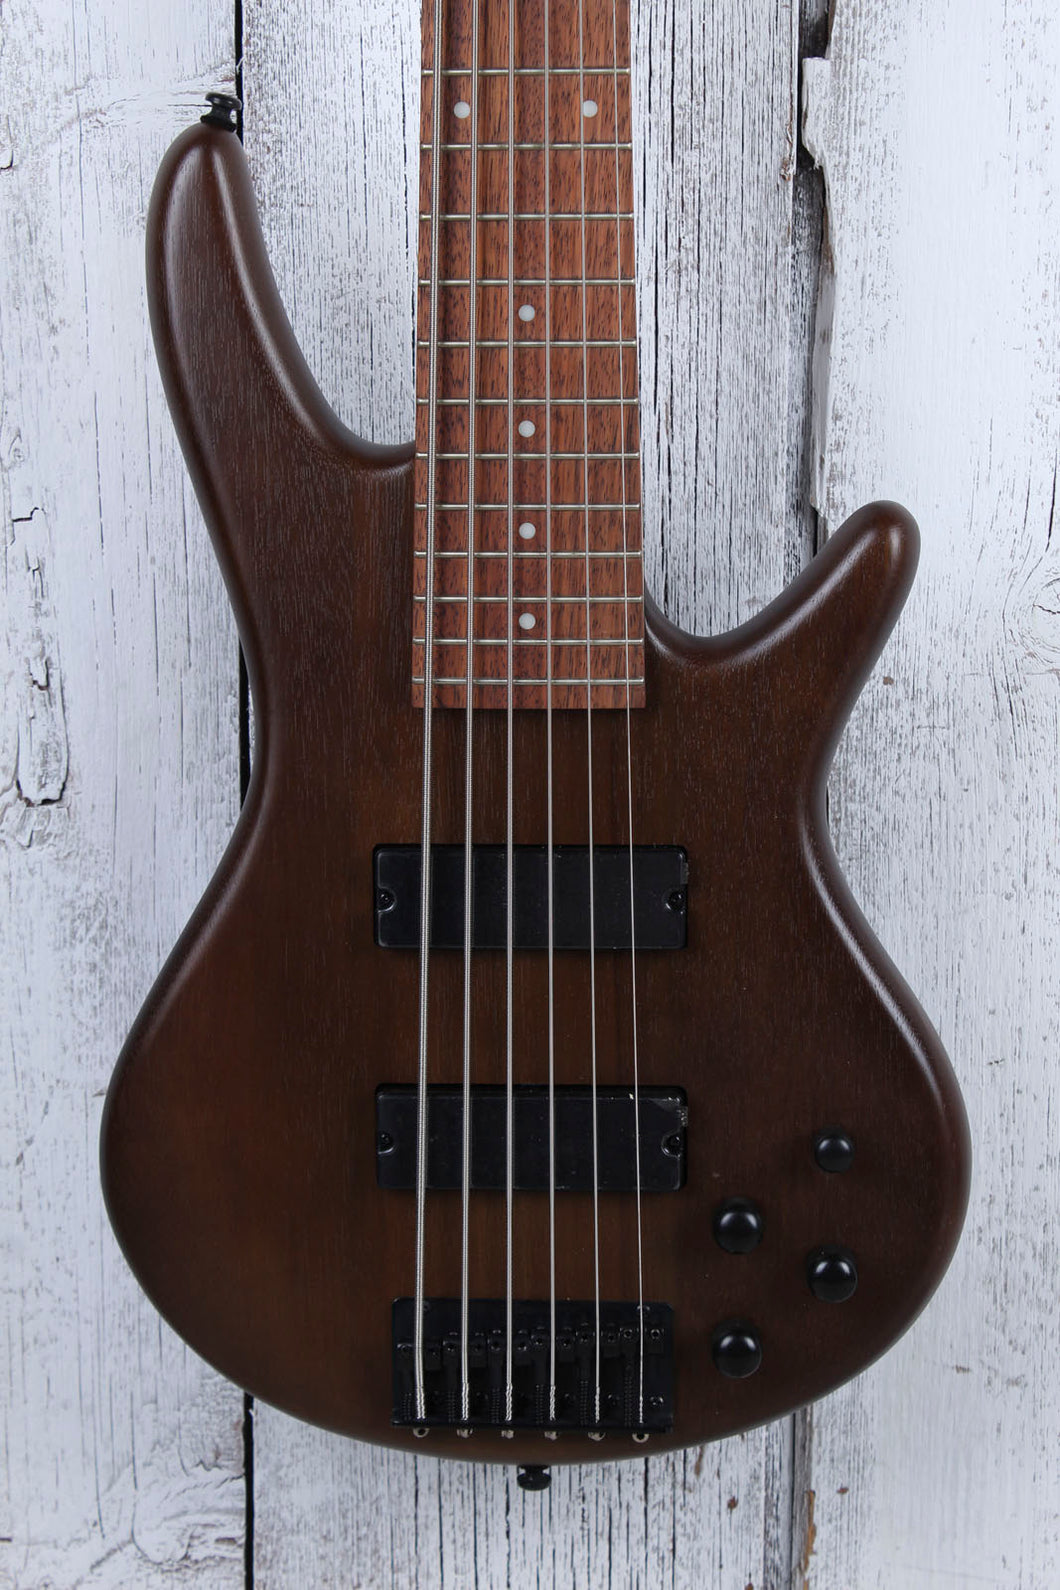 Ibanez GIO Soundgear GSR206 6 String Electric Bass Guitar Phat II EQ Walnut Flat